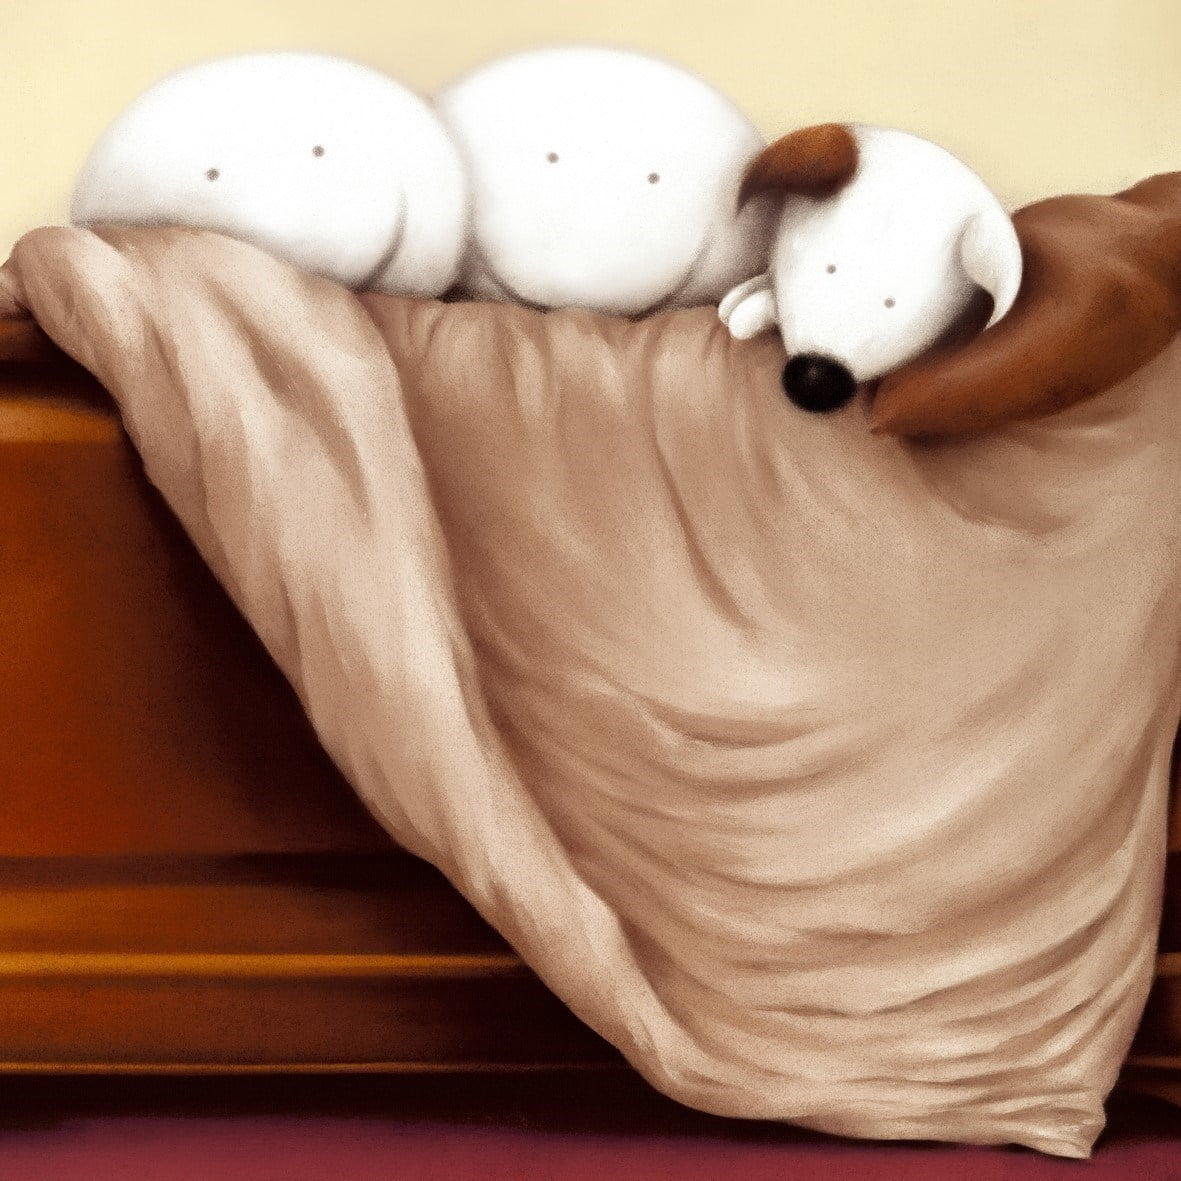 Any room for me ~ Doug Hyde